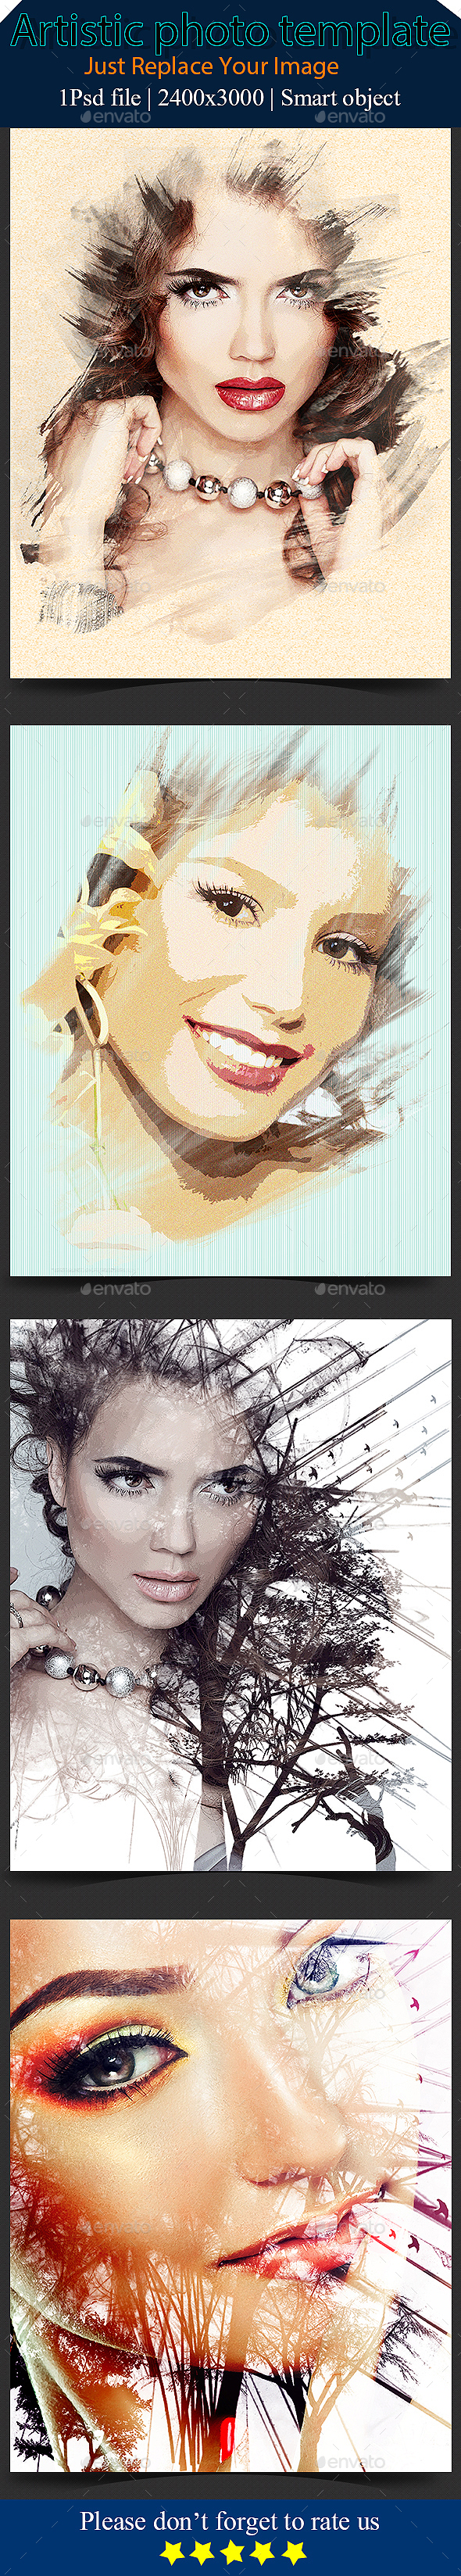 Splatter Dispersion Photo Template (Artistic)